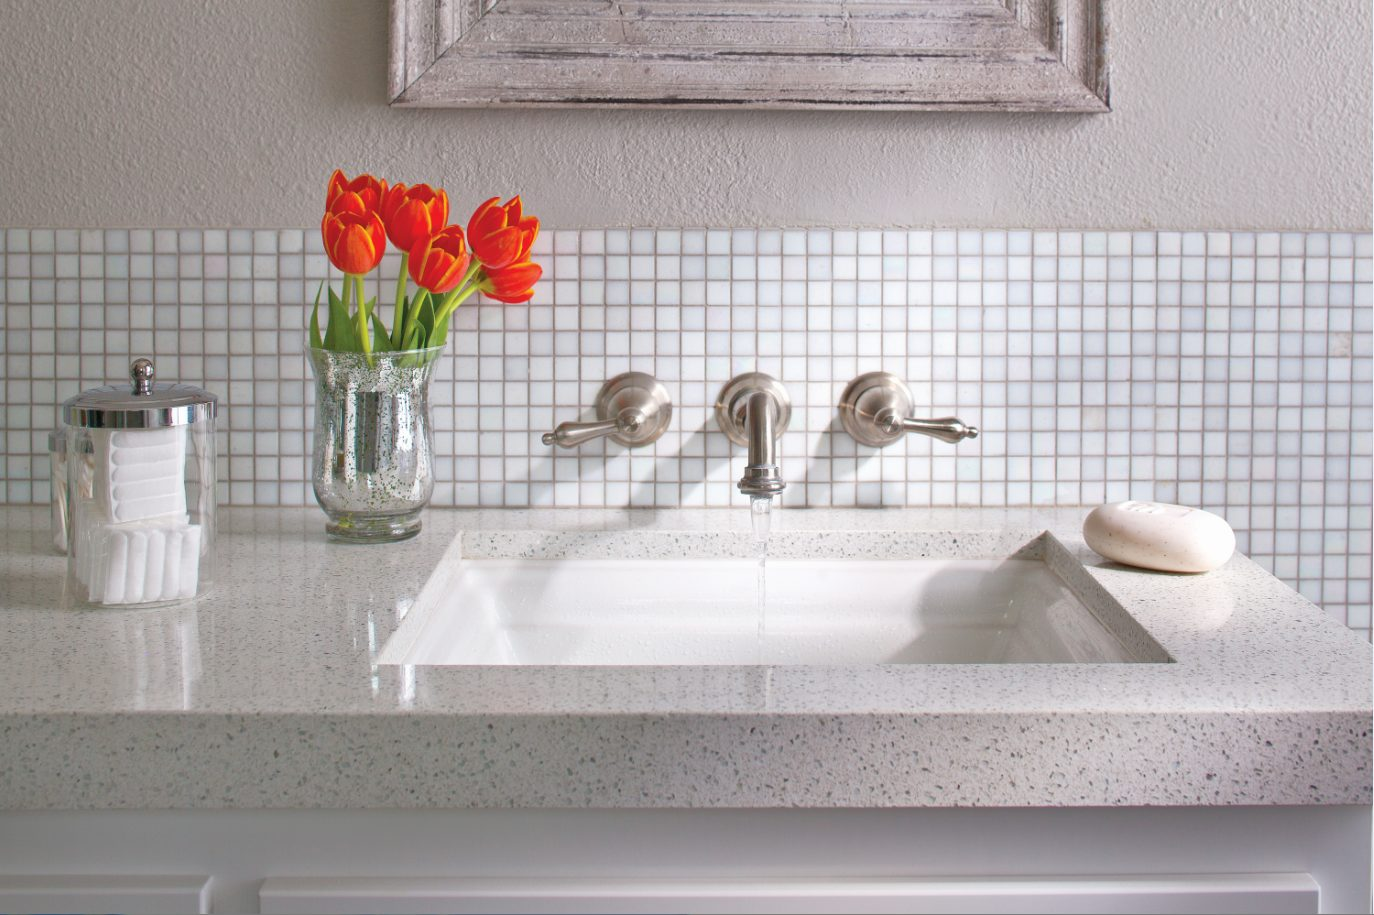 2015 will be the year of under-mounted sinks with sleek, modern legs instead of cabinetry.